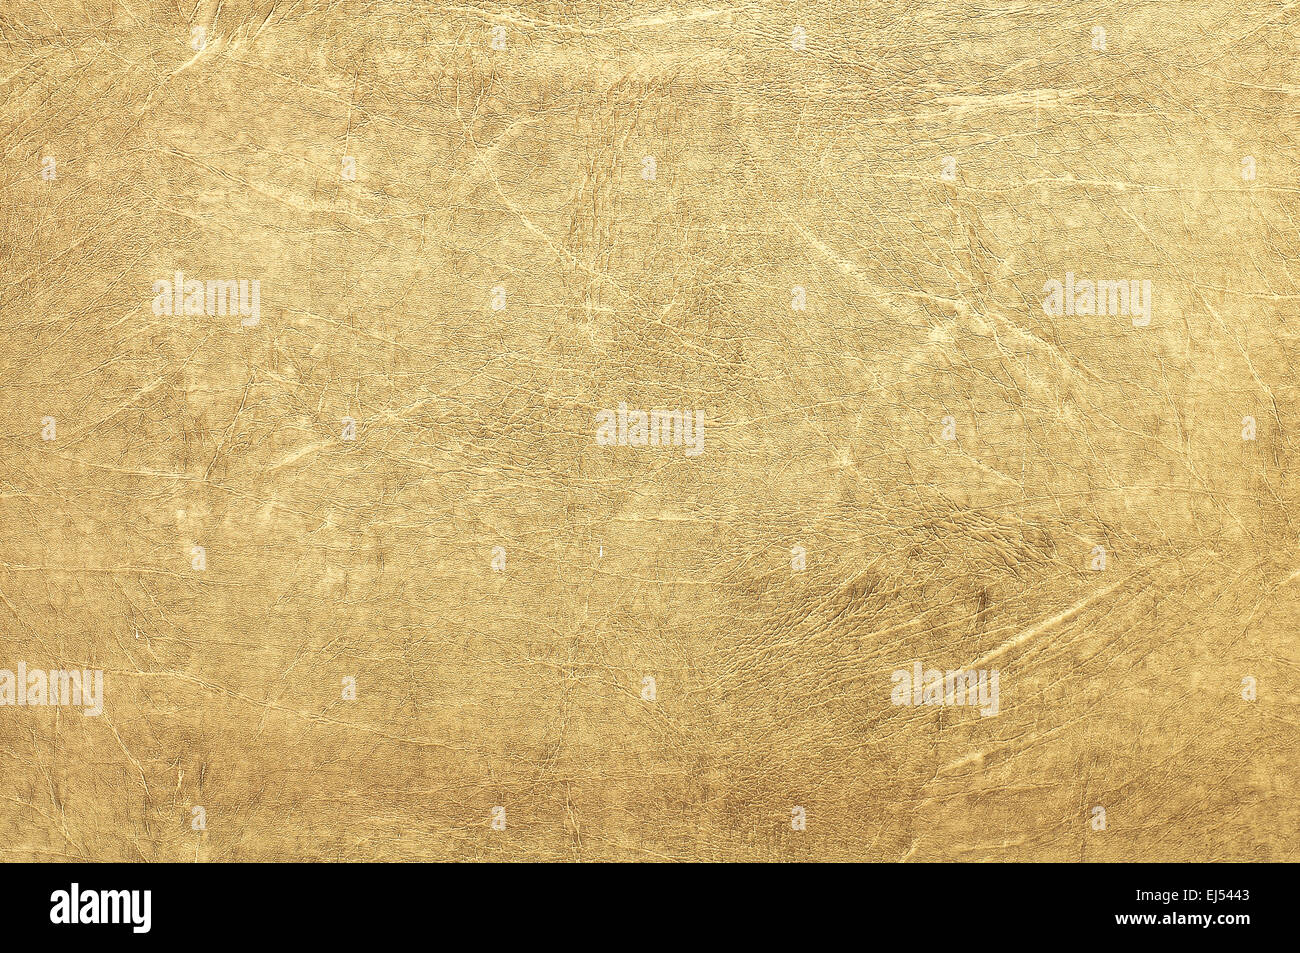 Decorative Plaster Stock Photos & Decorative Plaster Stock Images ...